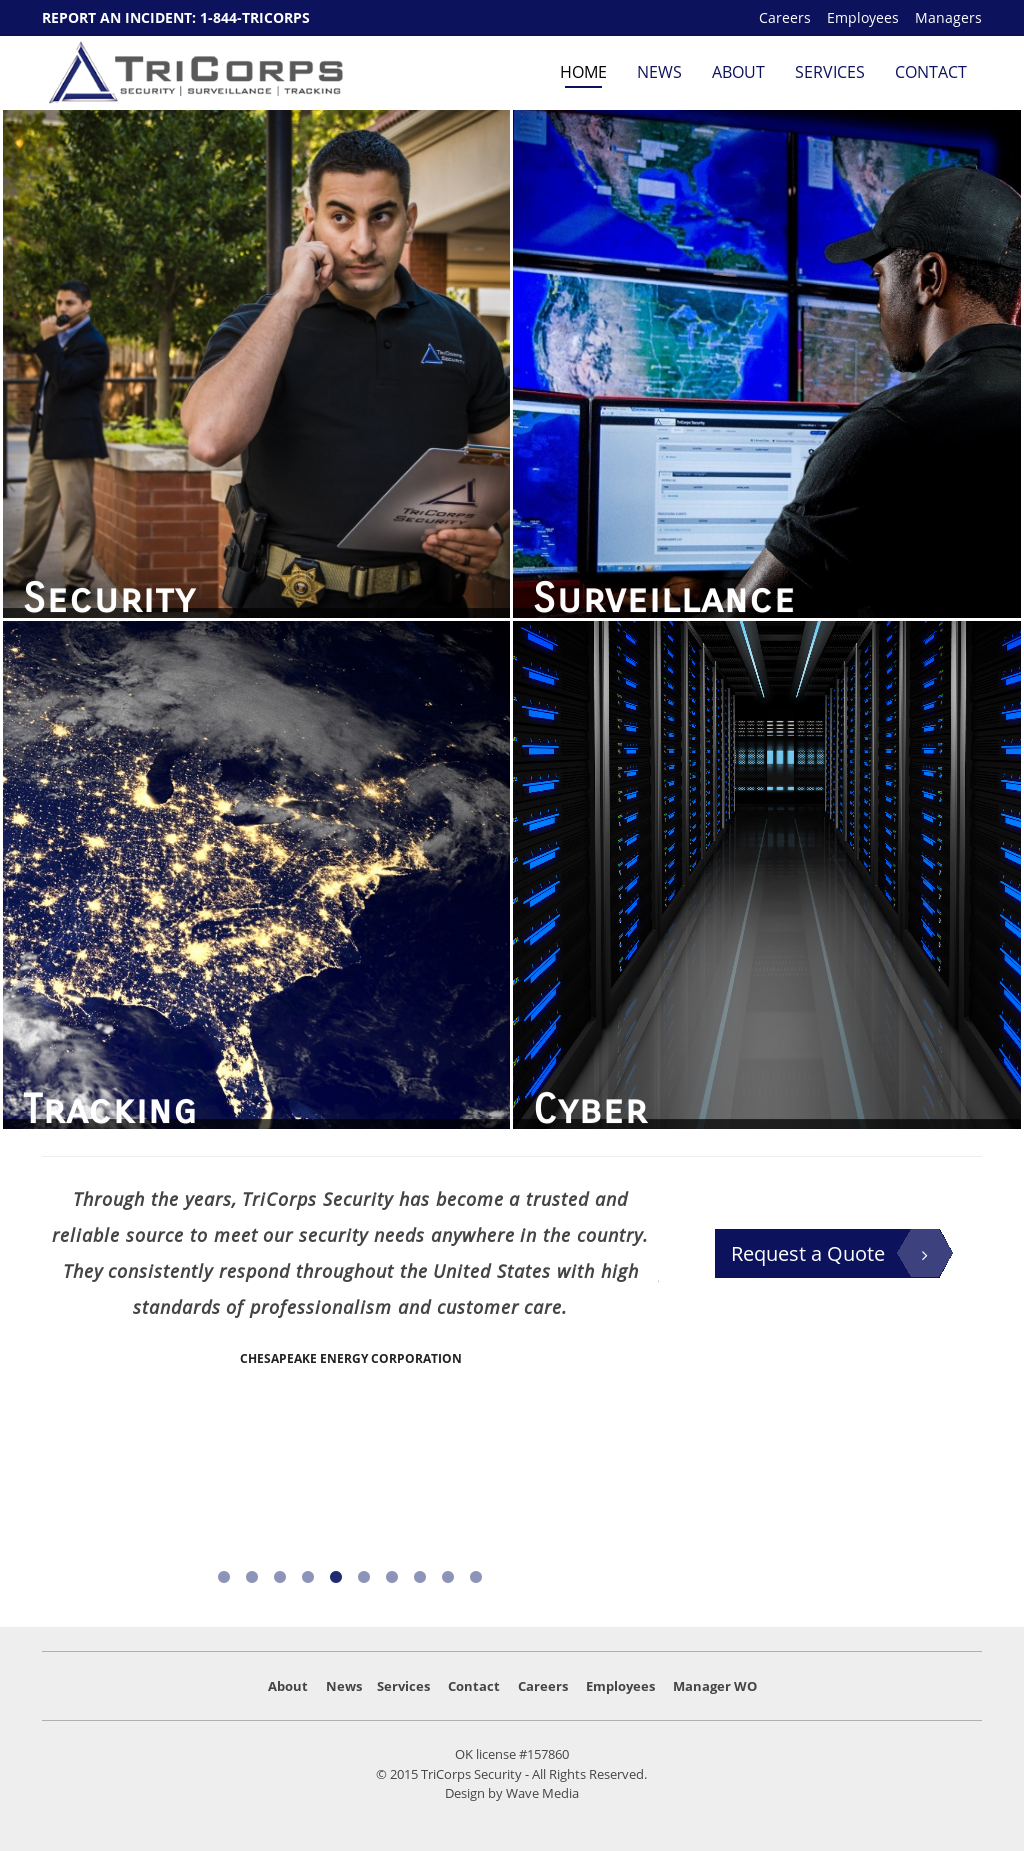 Tricorps Security Competitors, Revenue and Employees - Owler Company